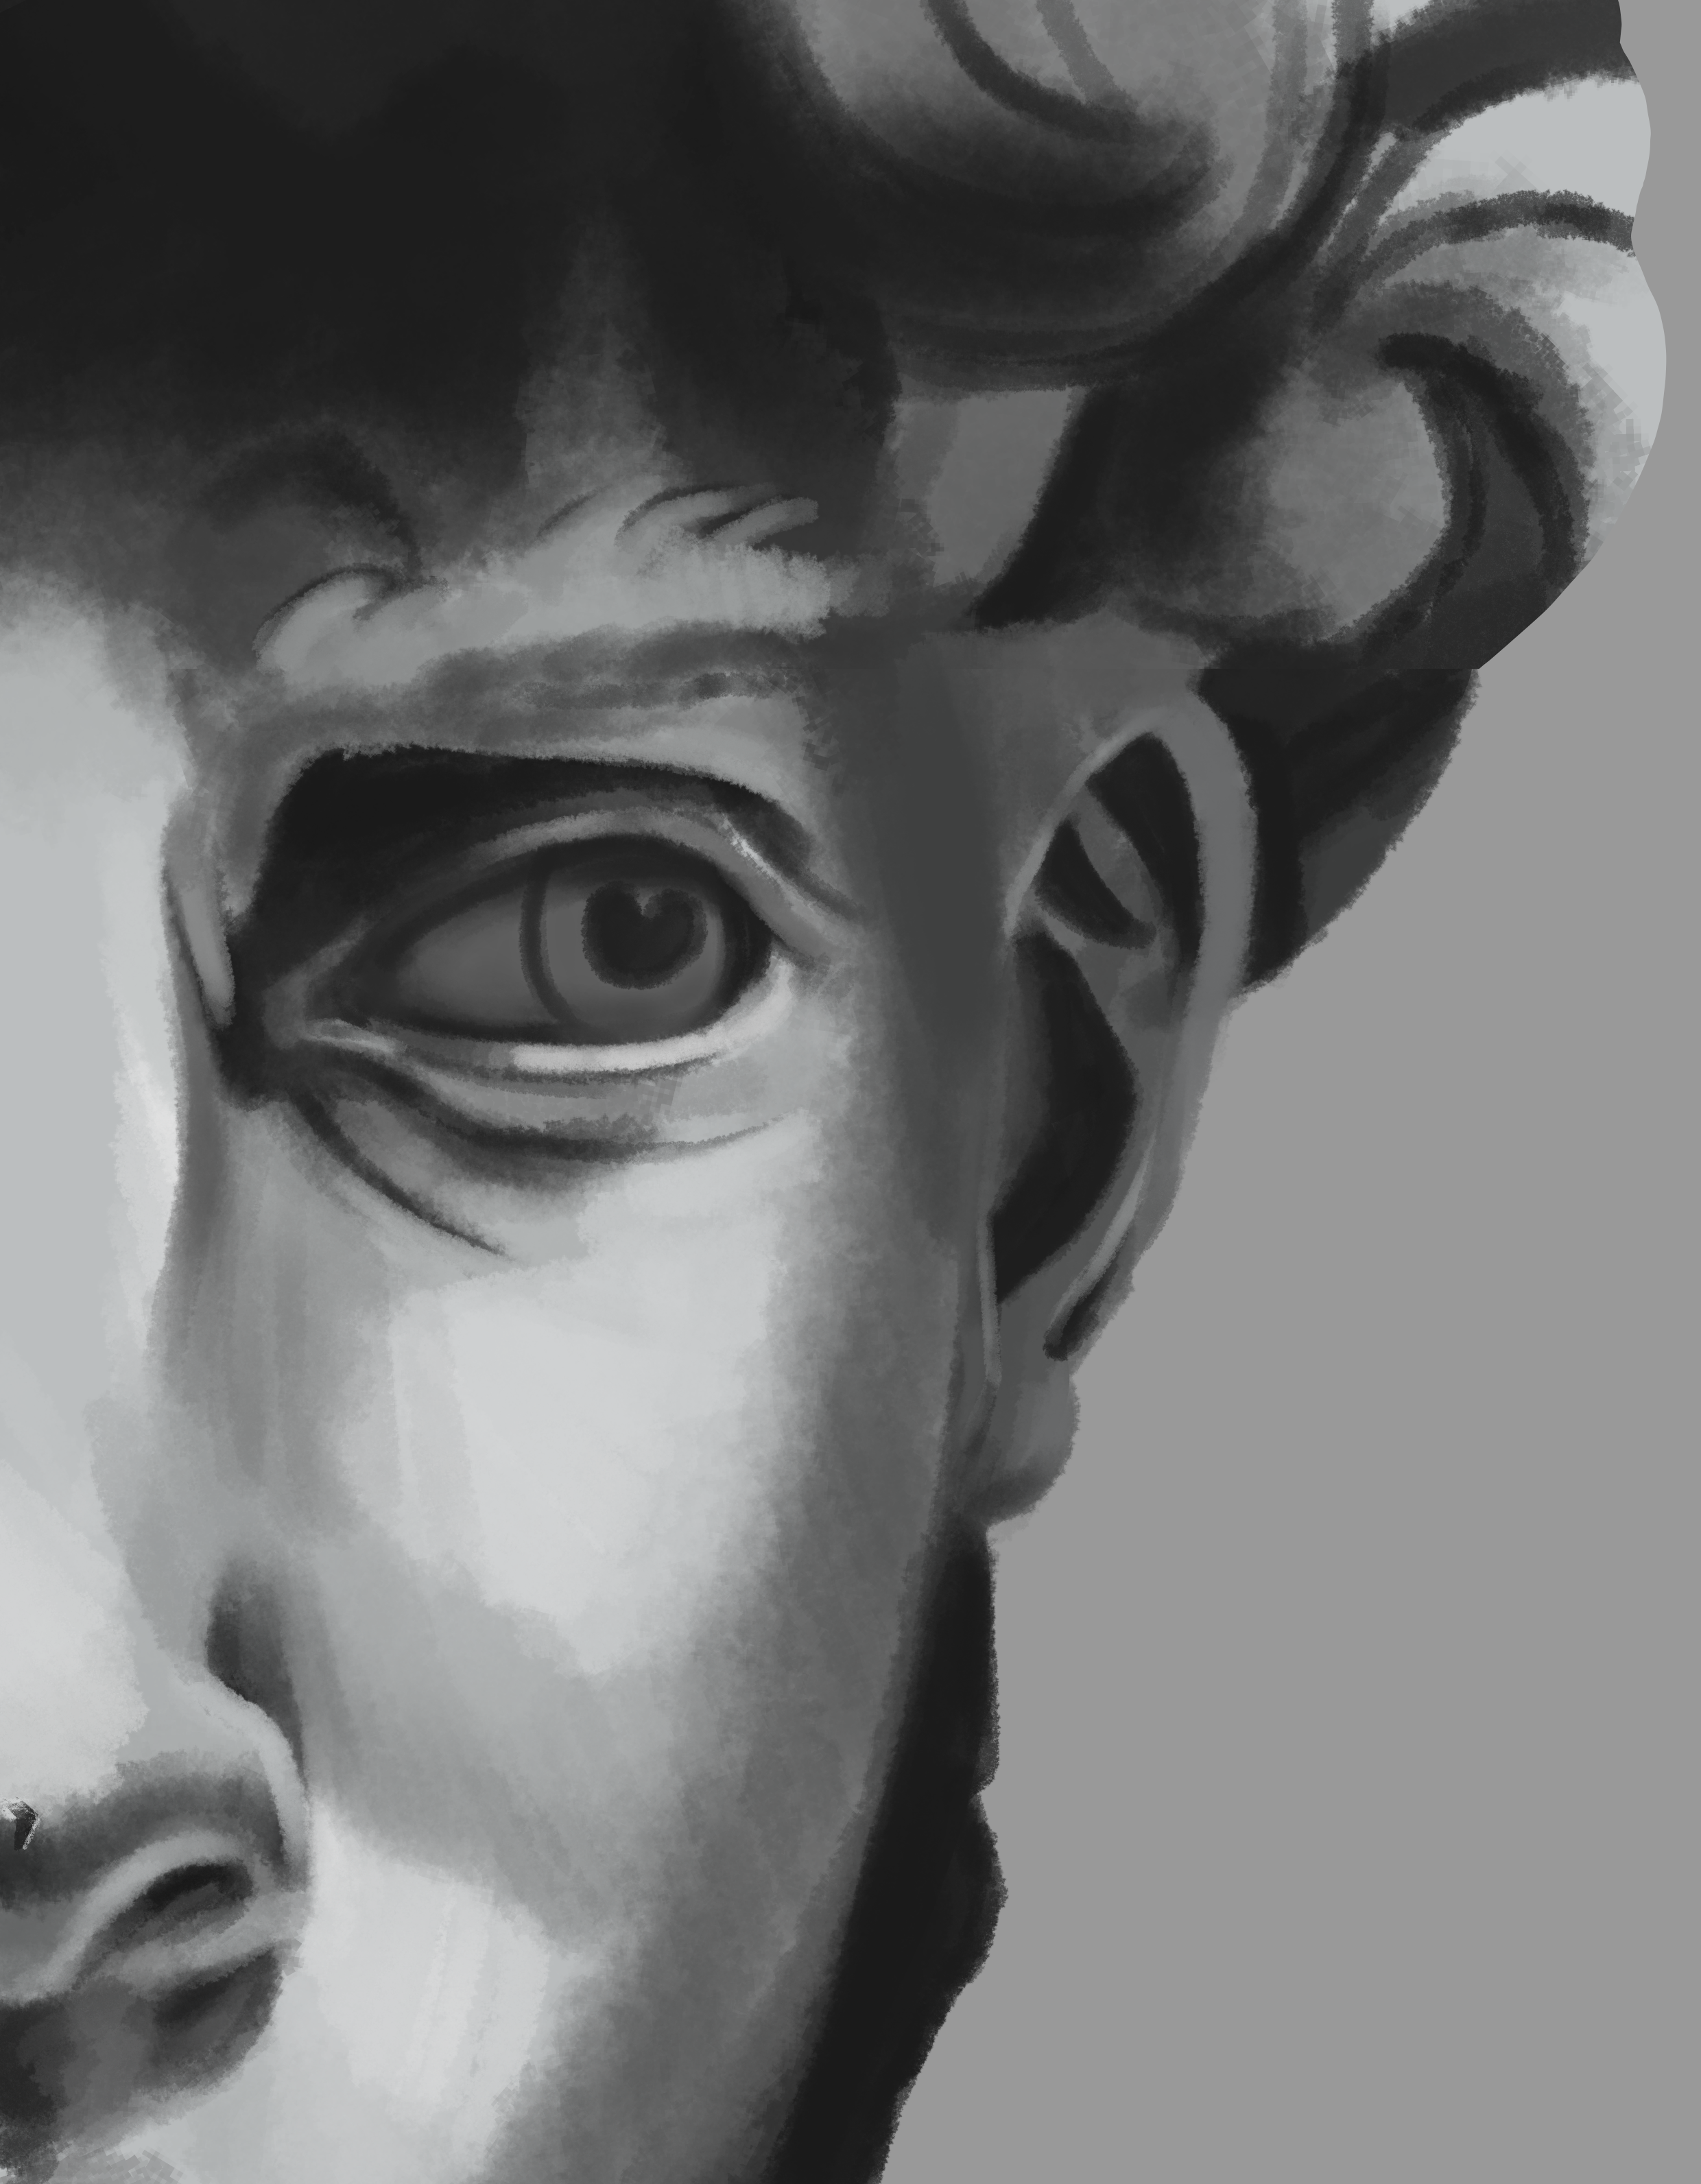 30-minute study of  Linda Hubert' s drawing of David.   Link:  https://imaginee.deviantart.com/art/The-Face-Of-David-195293532